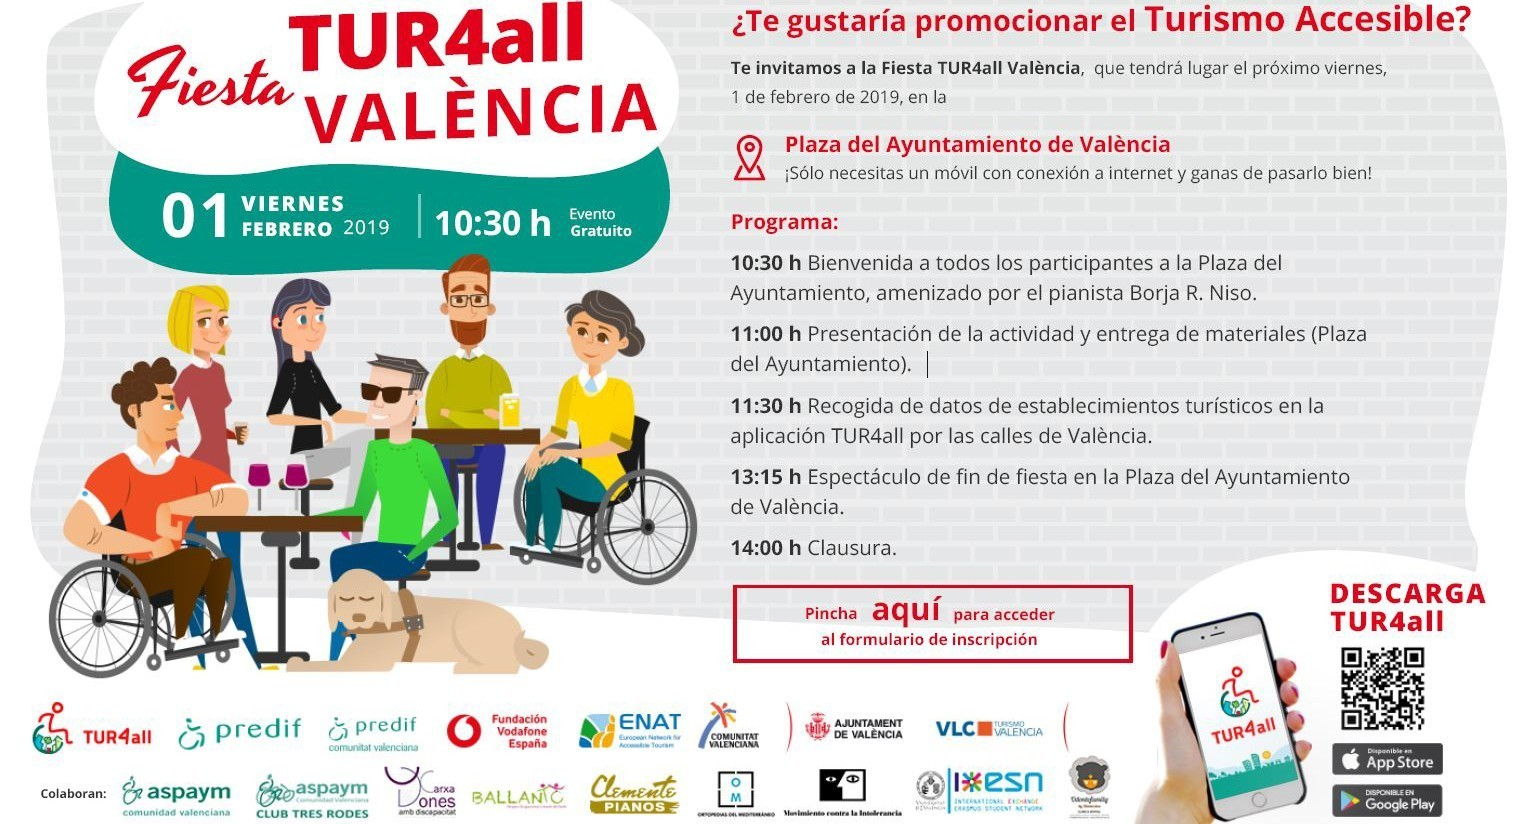 Cover photo of the event de Fiesta TUR4all Valencia